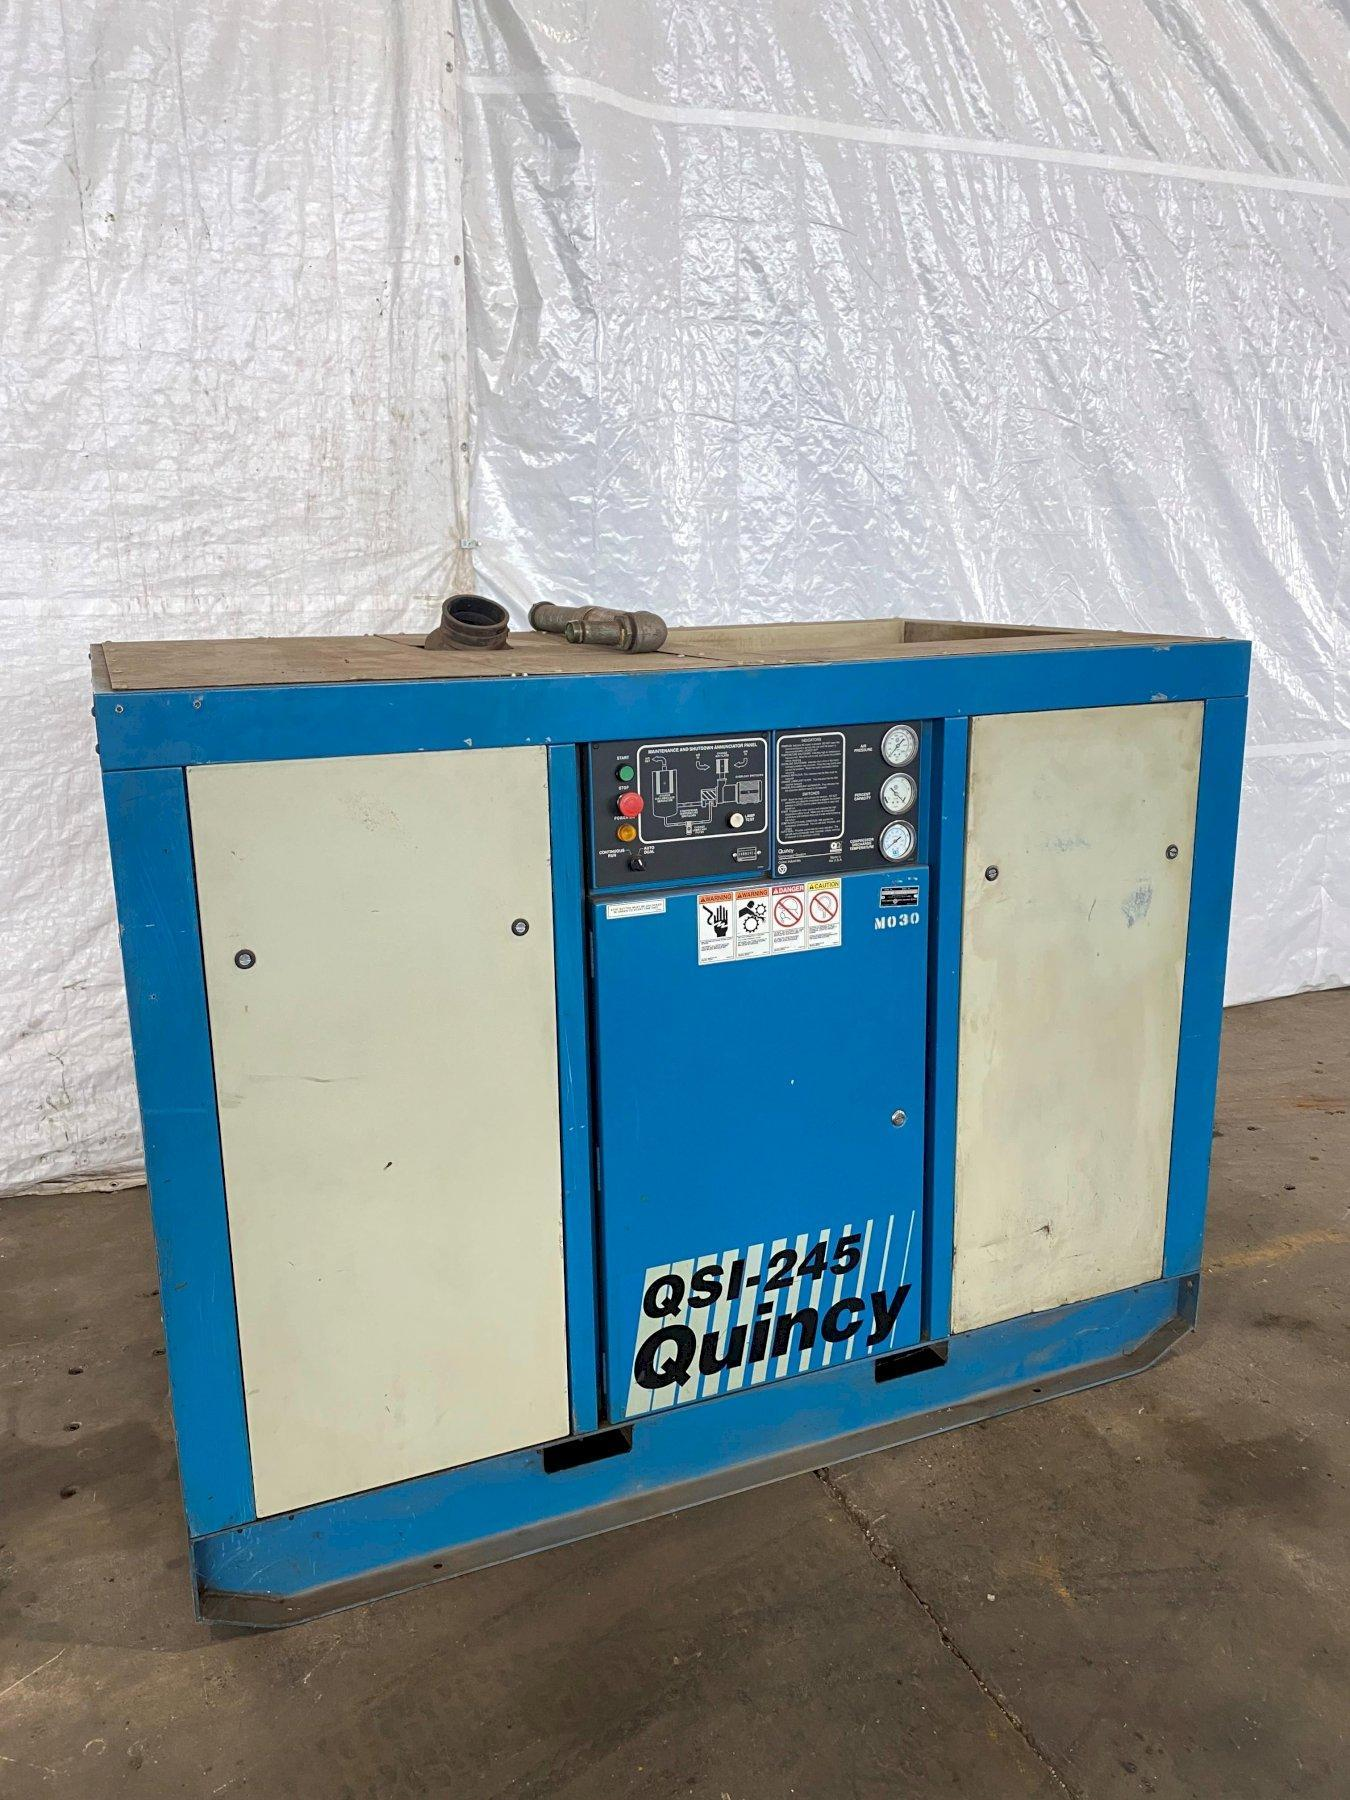 50 HP QUINCY QSI-245 ROTARY SCREW AIR COMPRESSOR. STOCK # 0307921